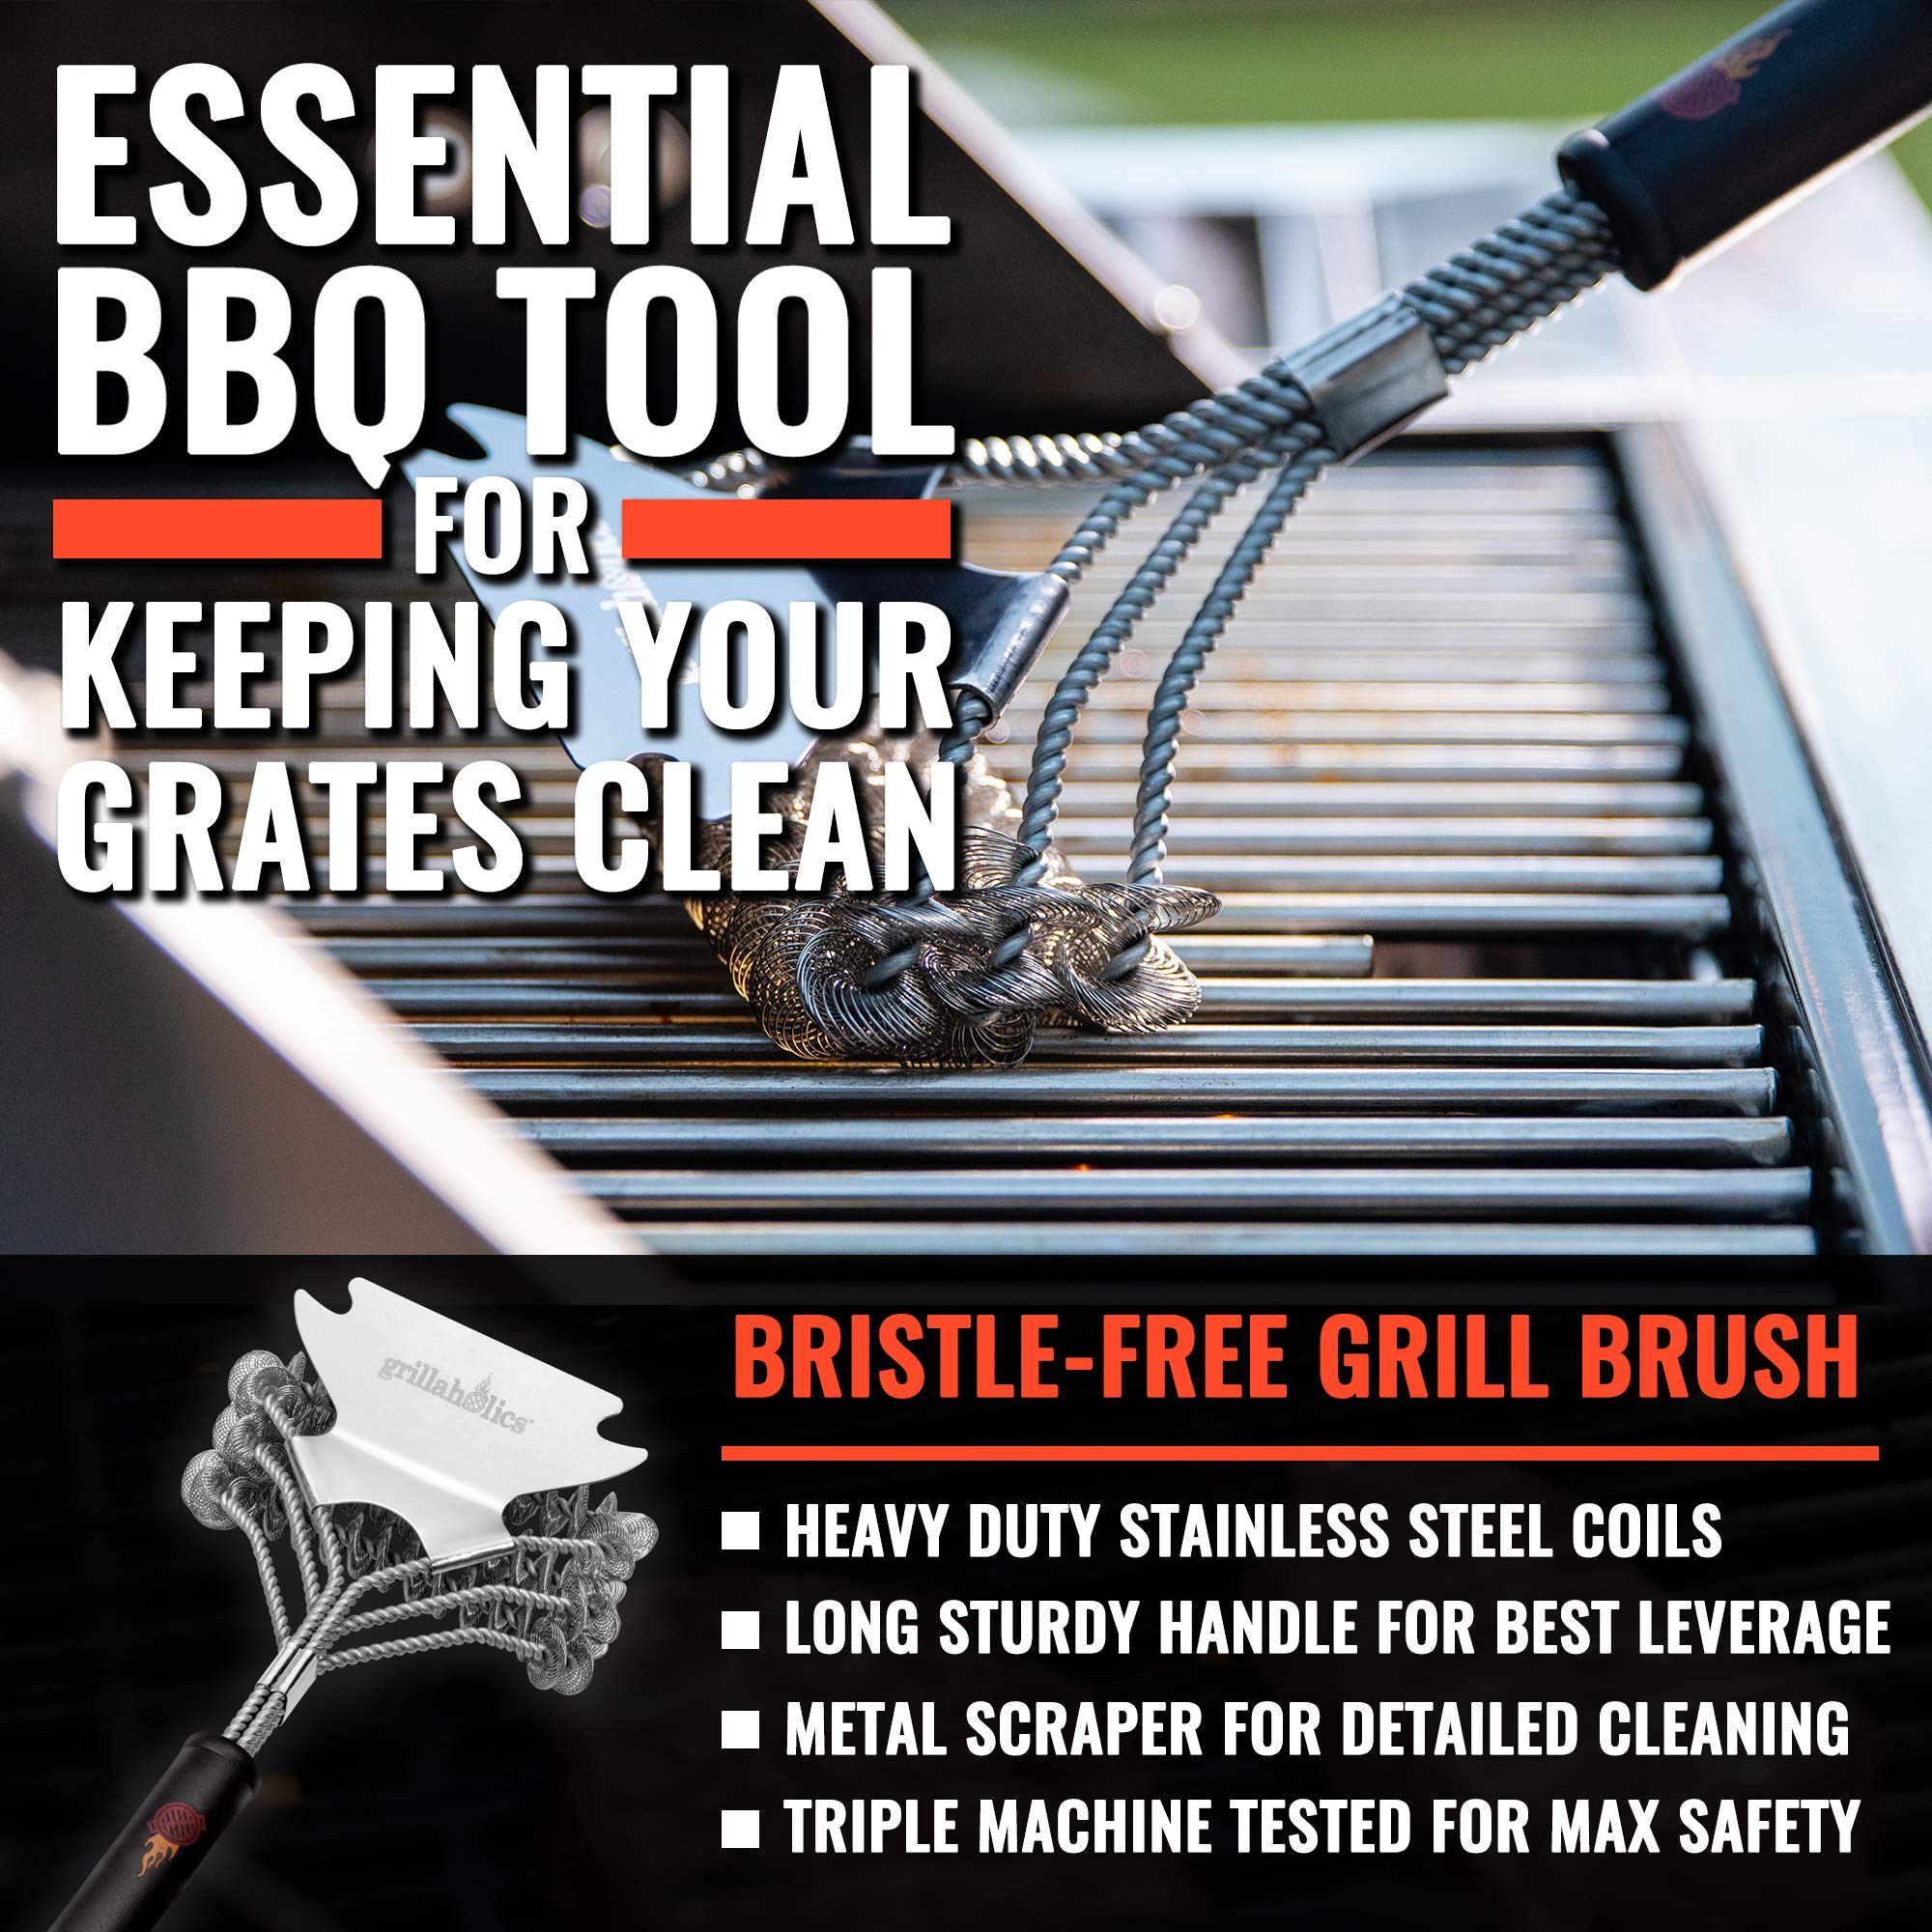 Grillaholics Grill Brush Bristle Free - Safe Grill Cleaning with No Wire Bristles - Professional Heavy Duty Stainless Steel Coils and Scraper - Lifetime Manufacturers Warranty by Grillaholics (Image #3)